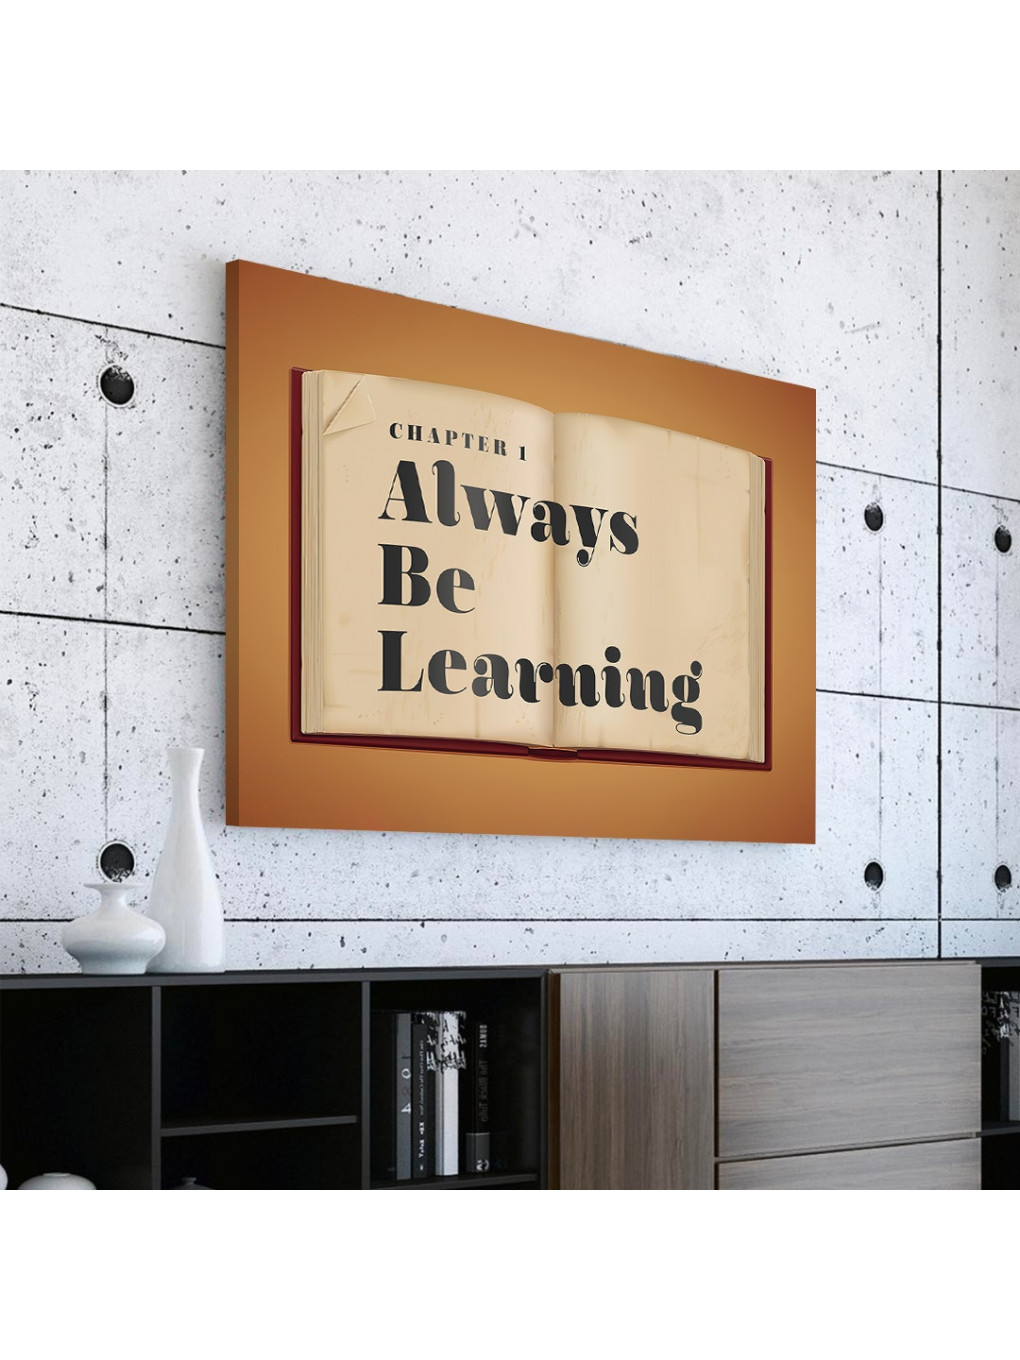 Always Be Learning_ABL160_2